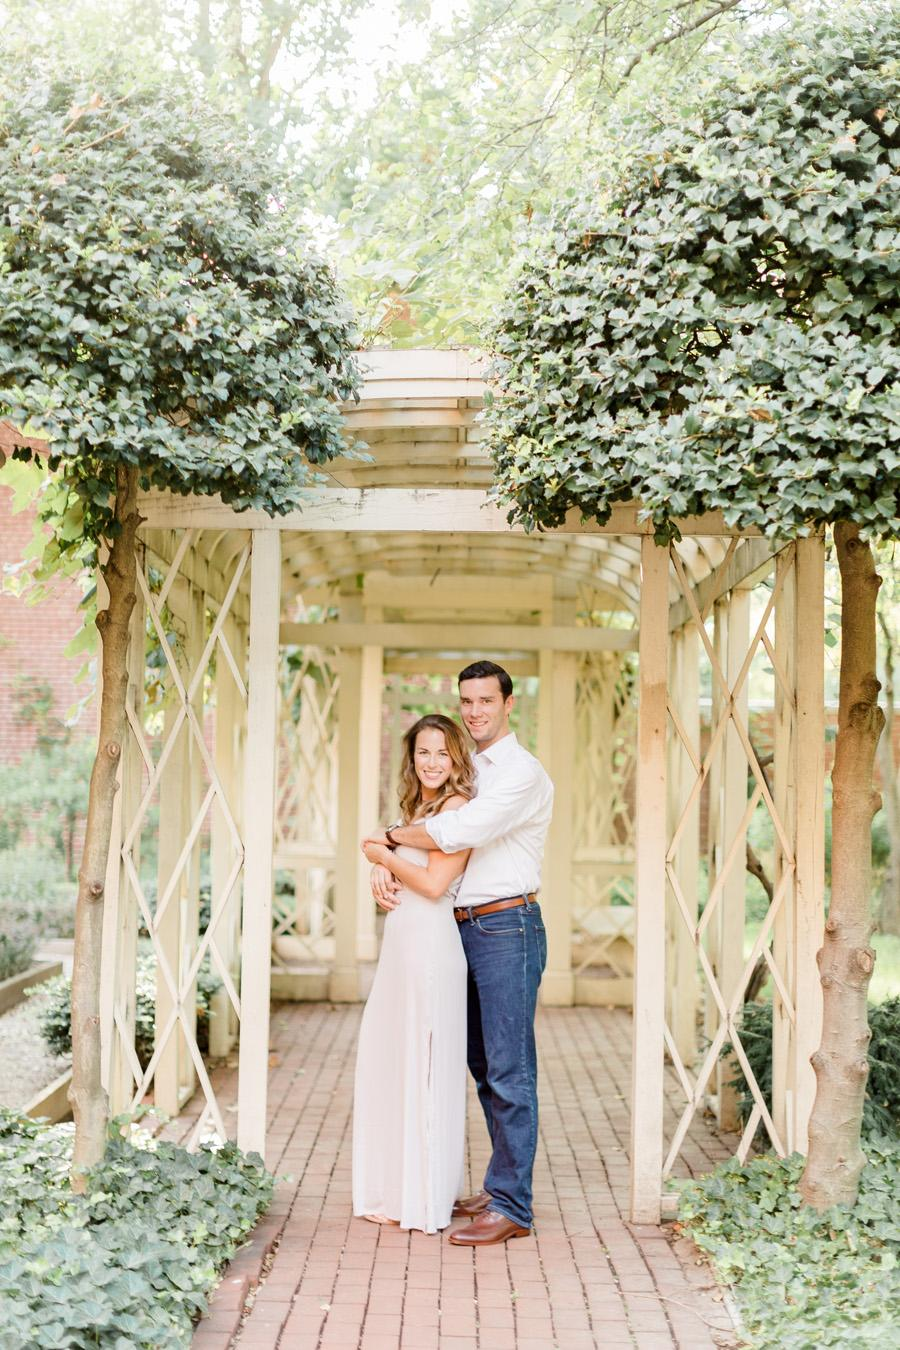 18th century garden, independence mall park engagement photos